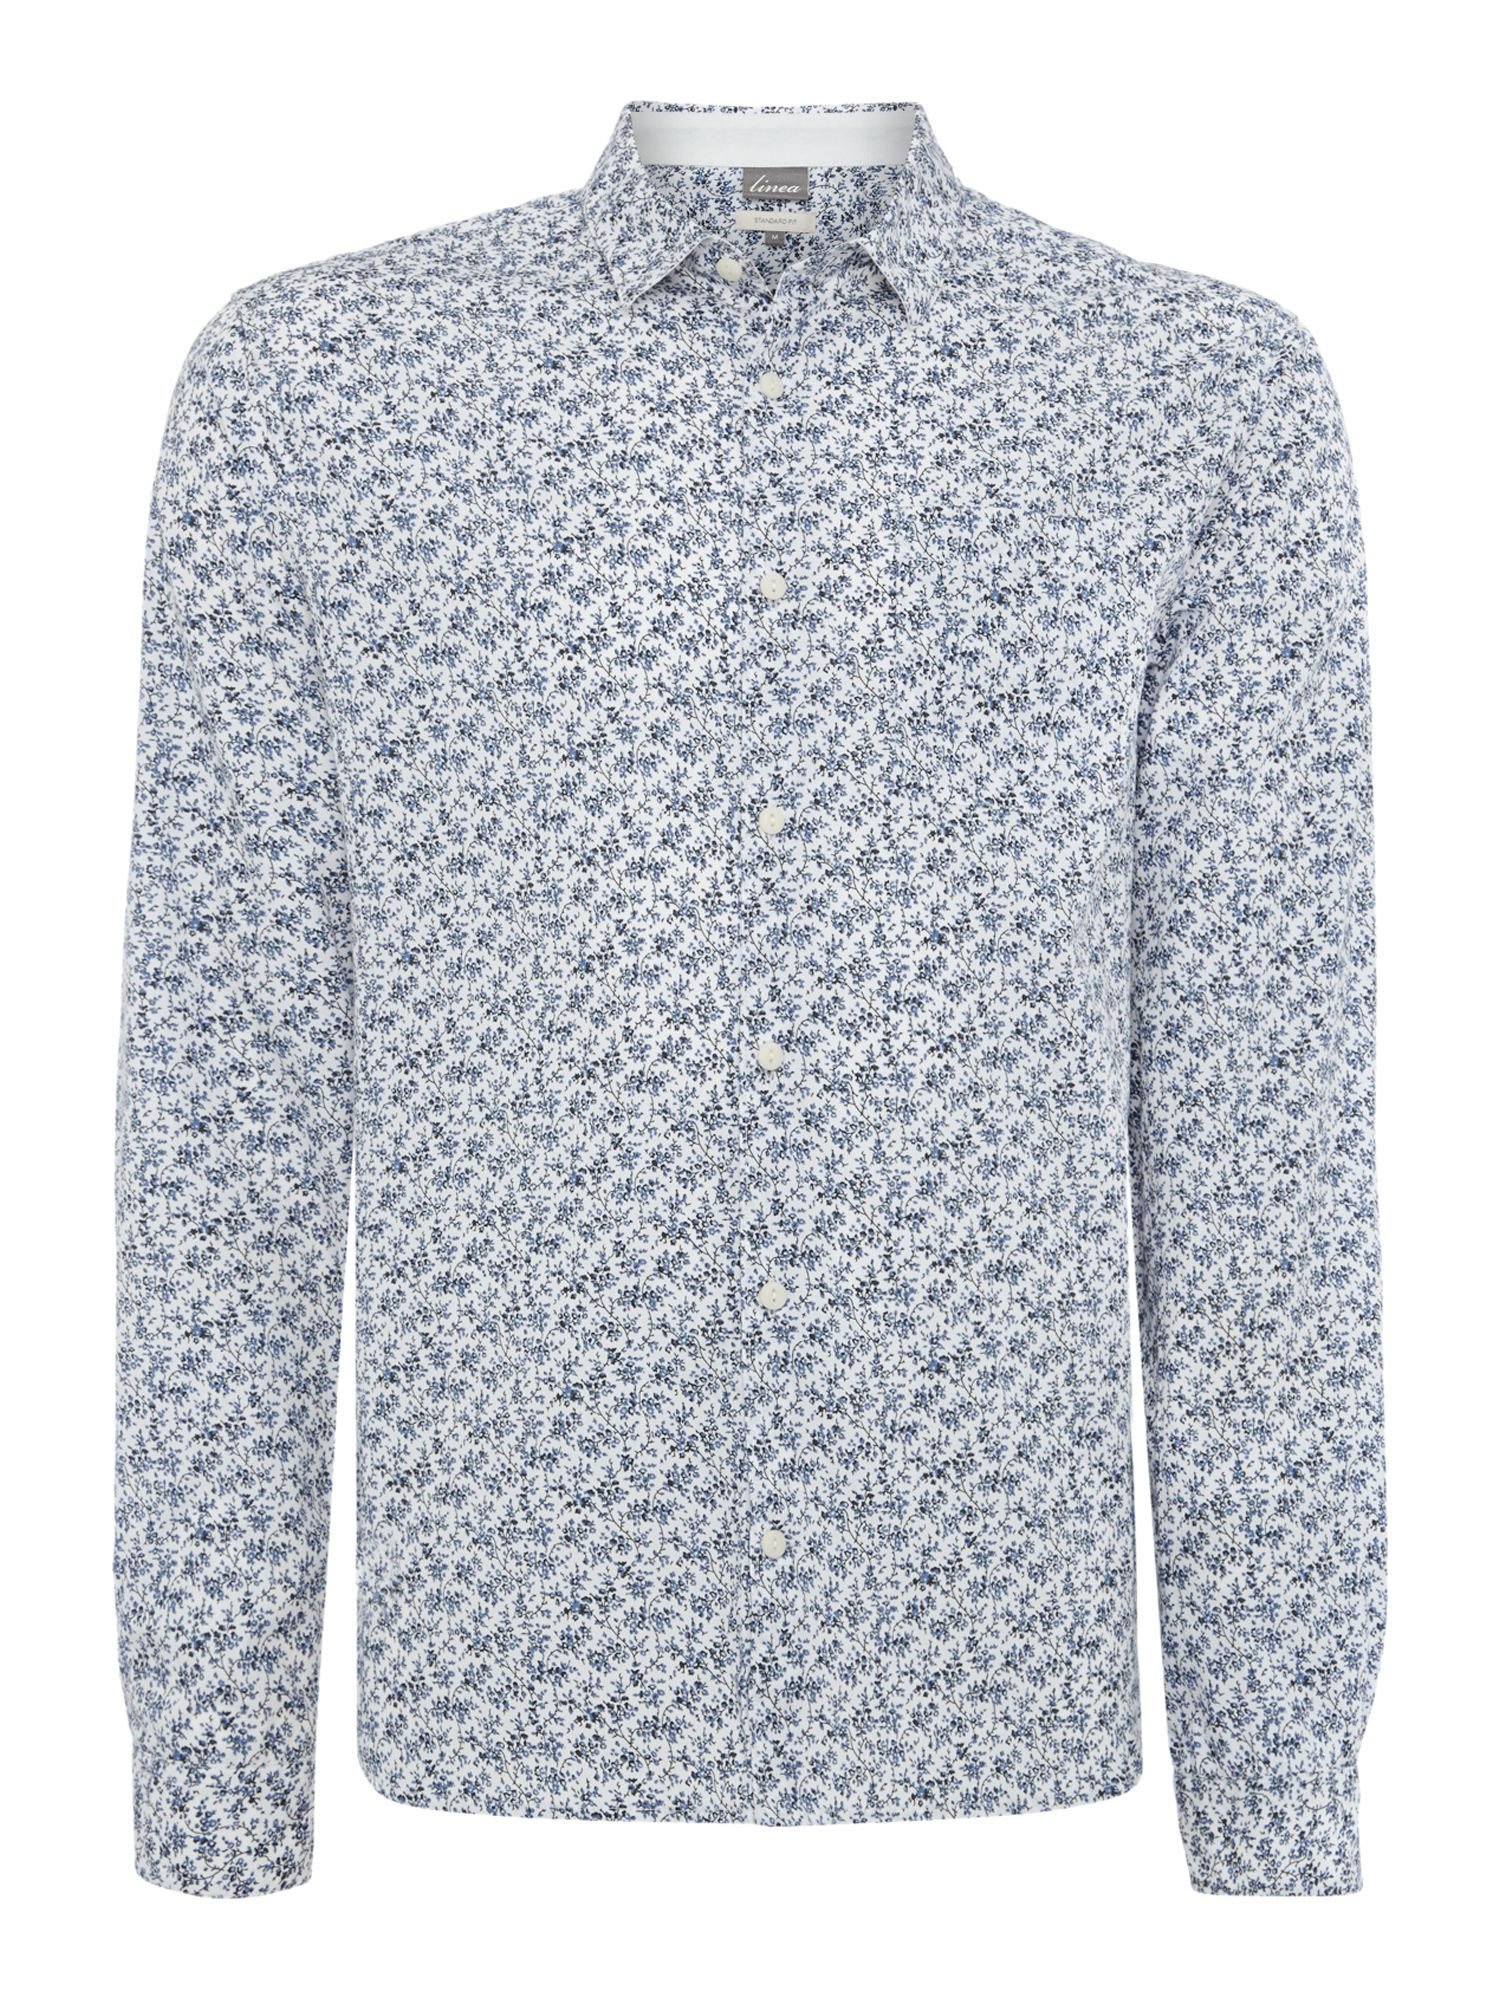 vale floral printed long sleeved shirt